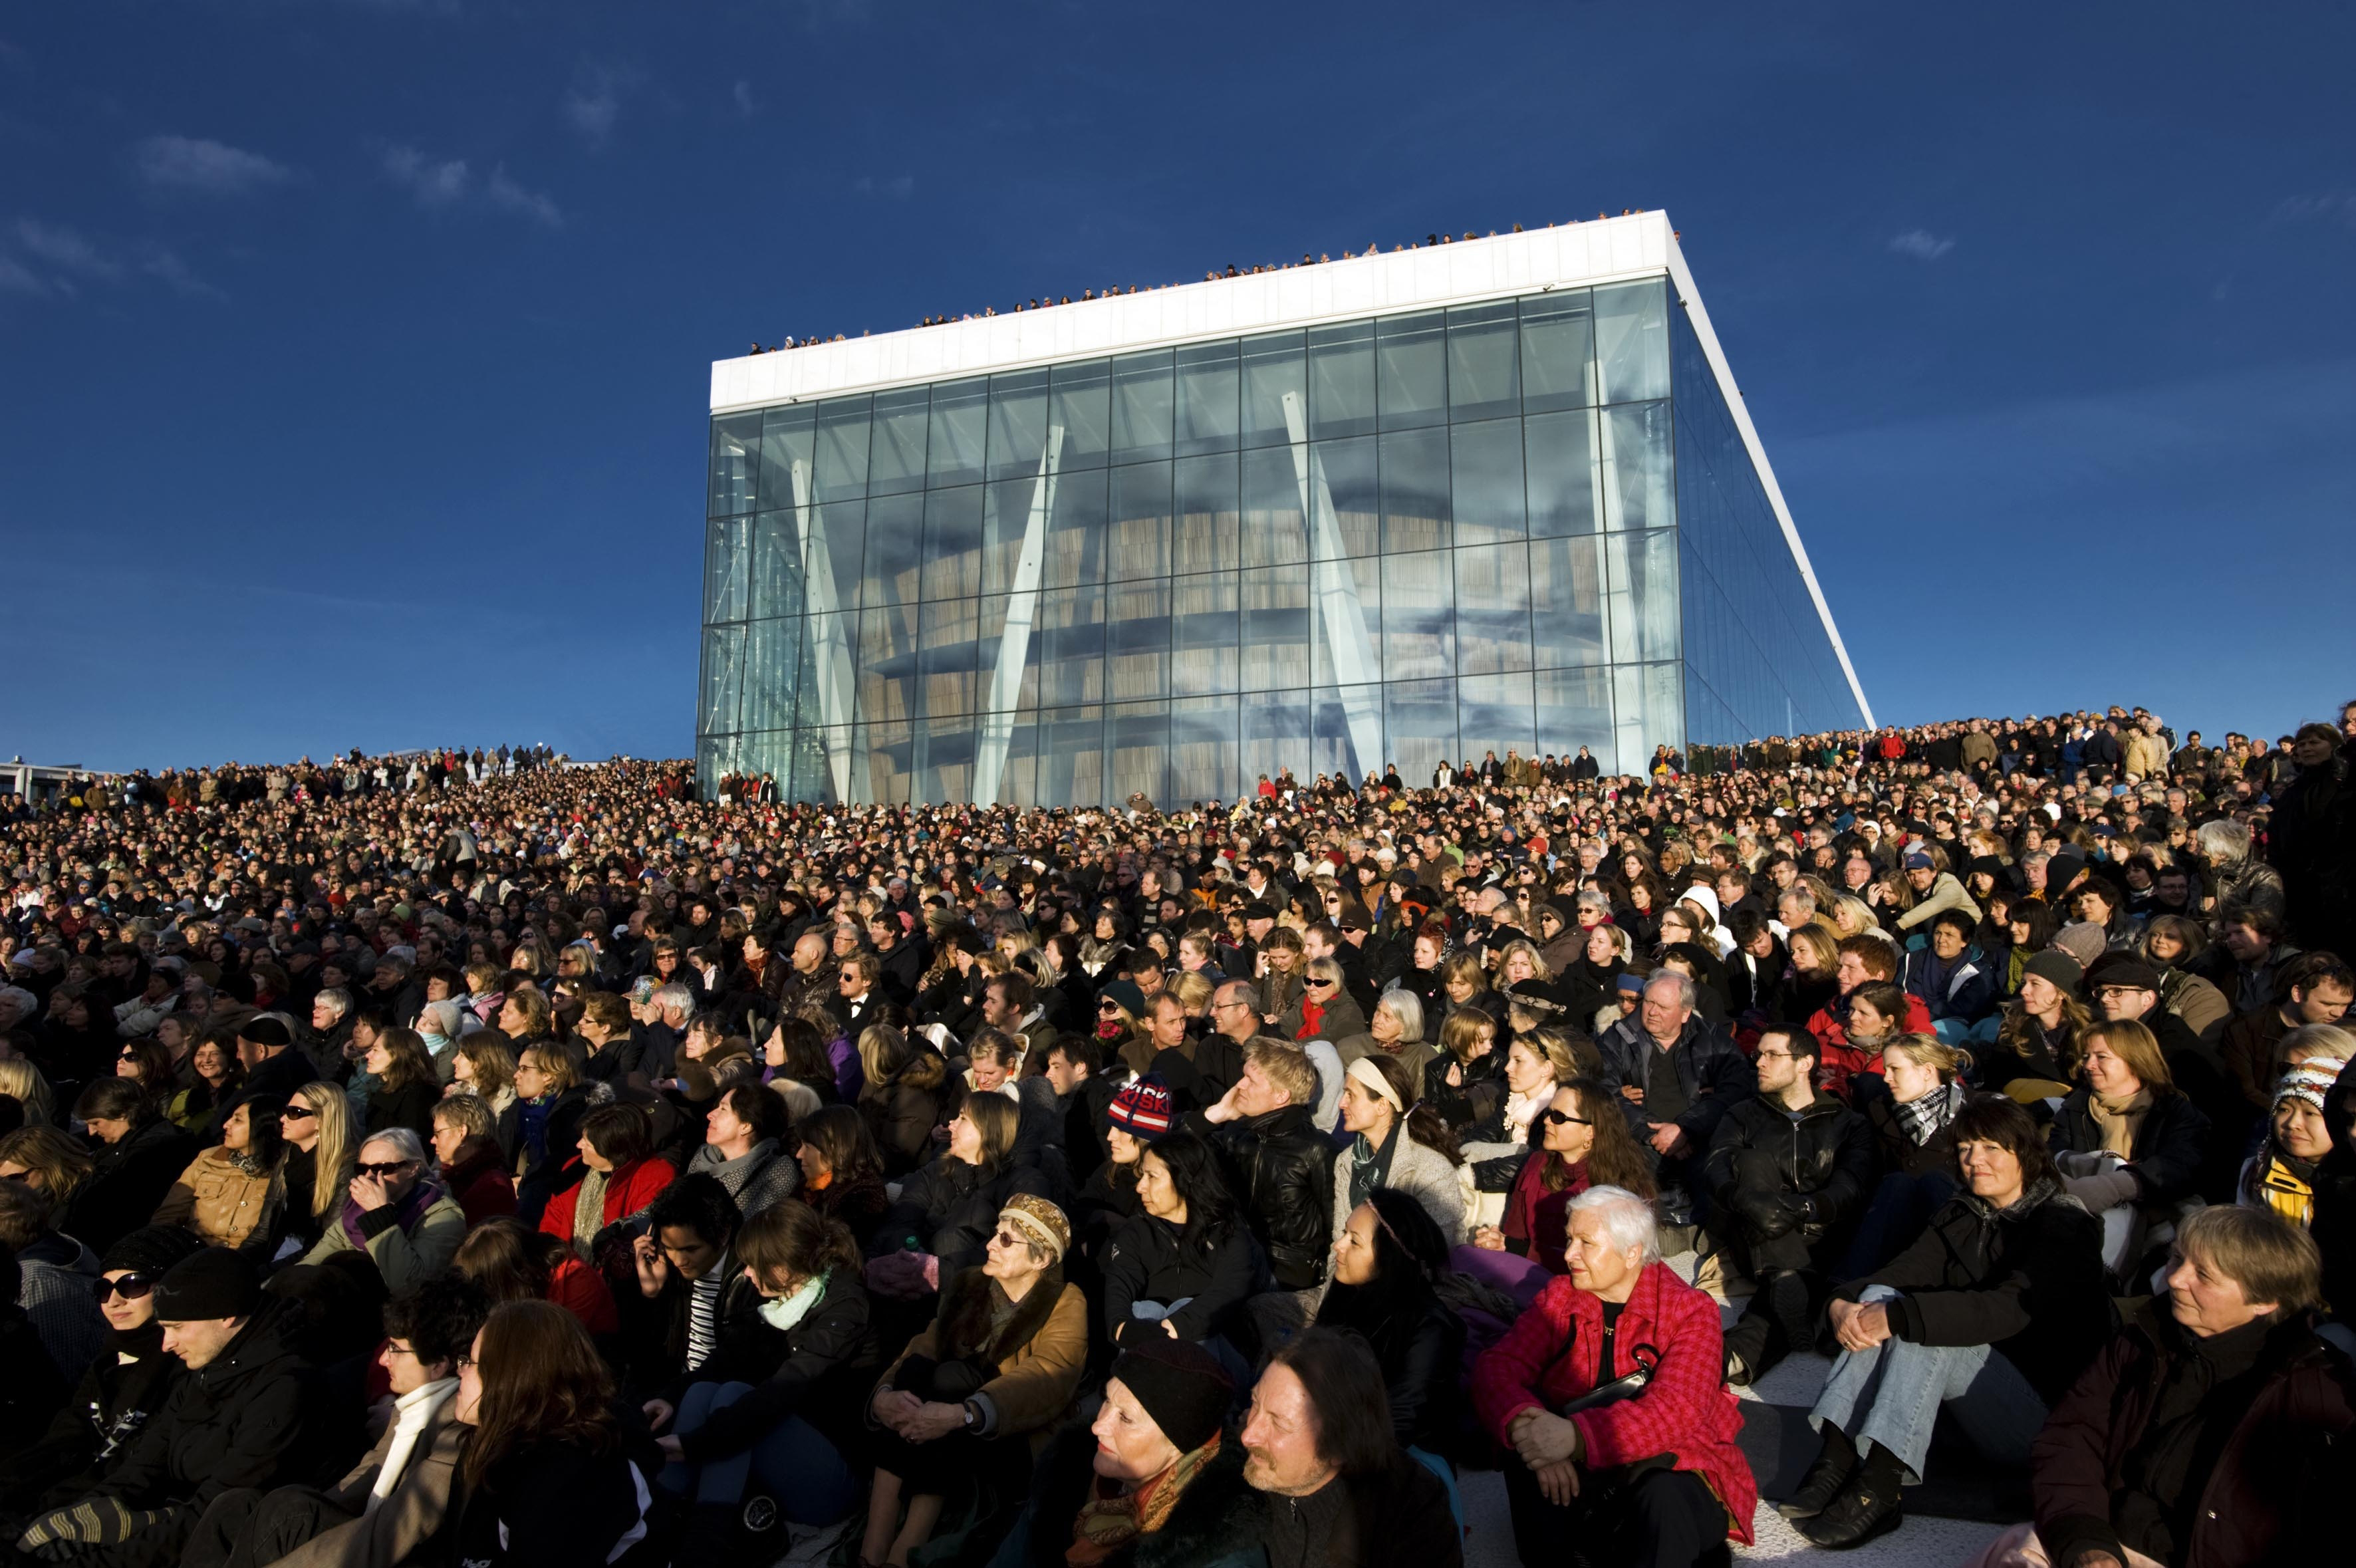 Oslo Opera House outdoor concert